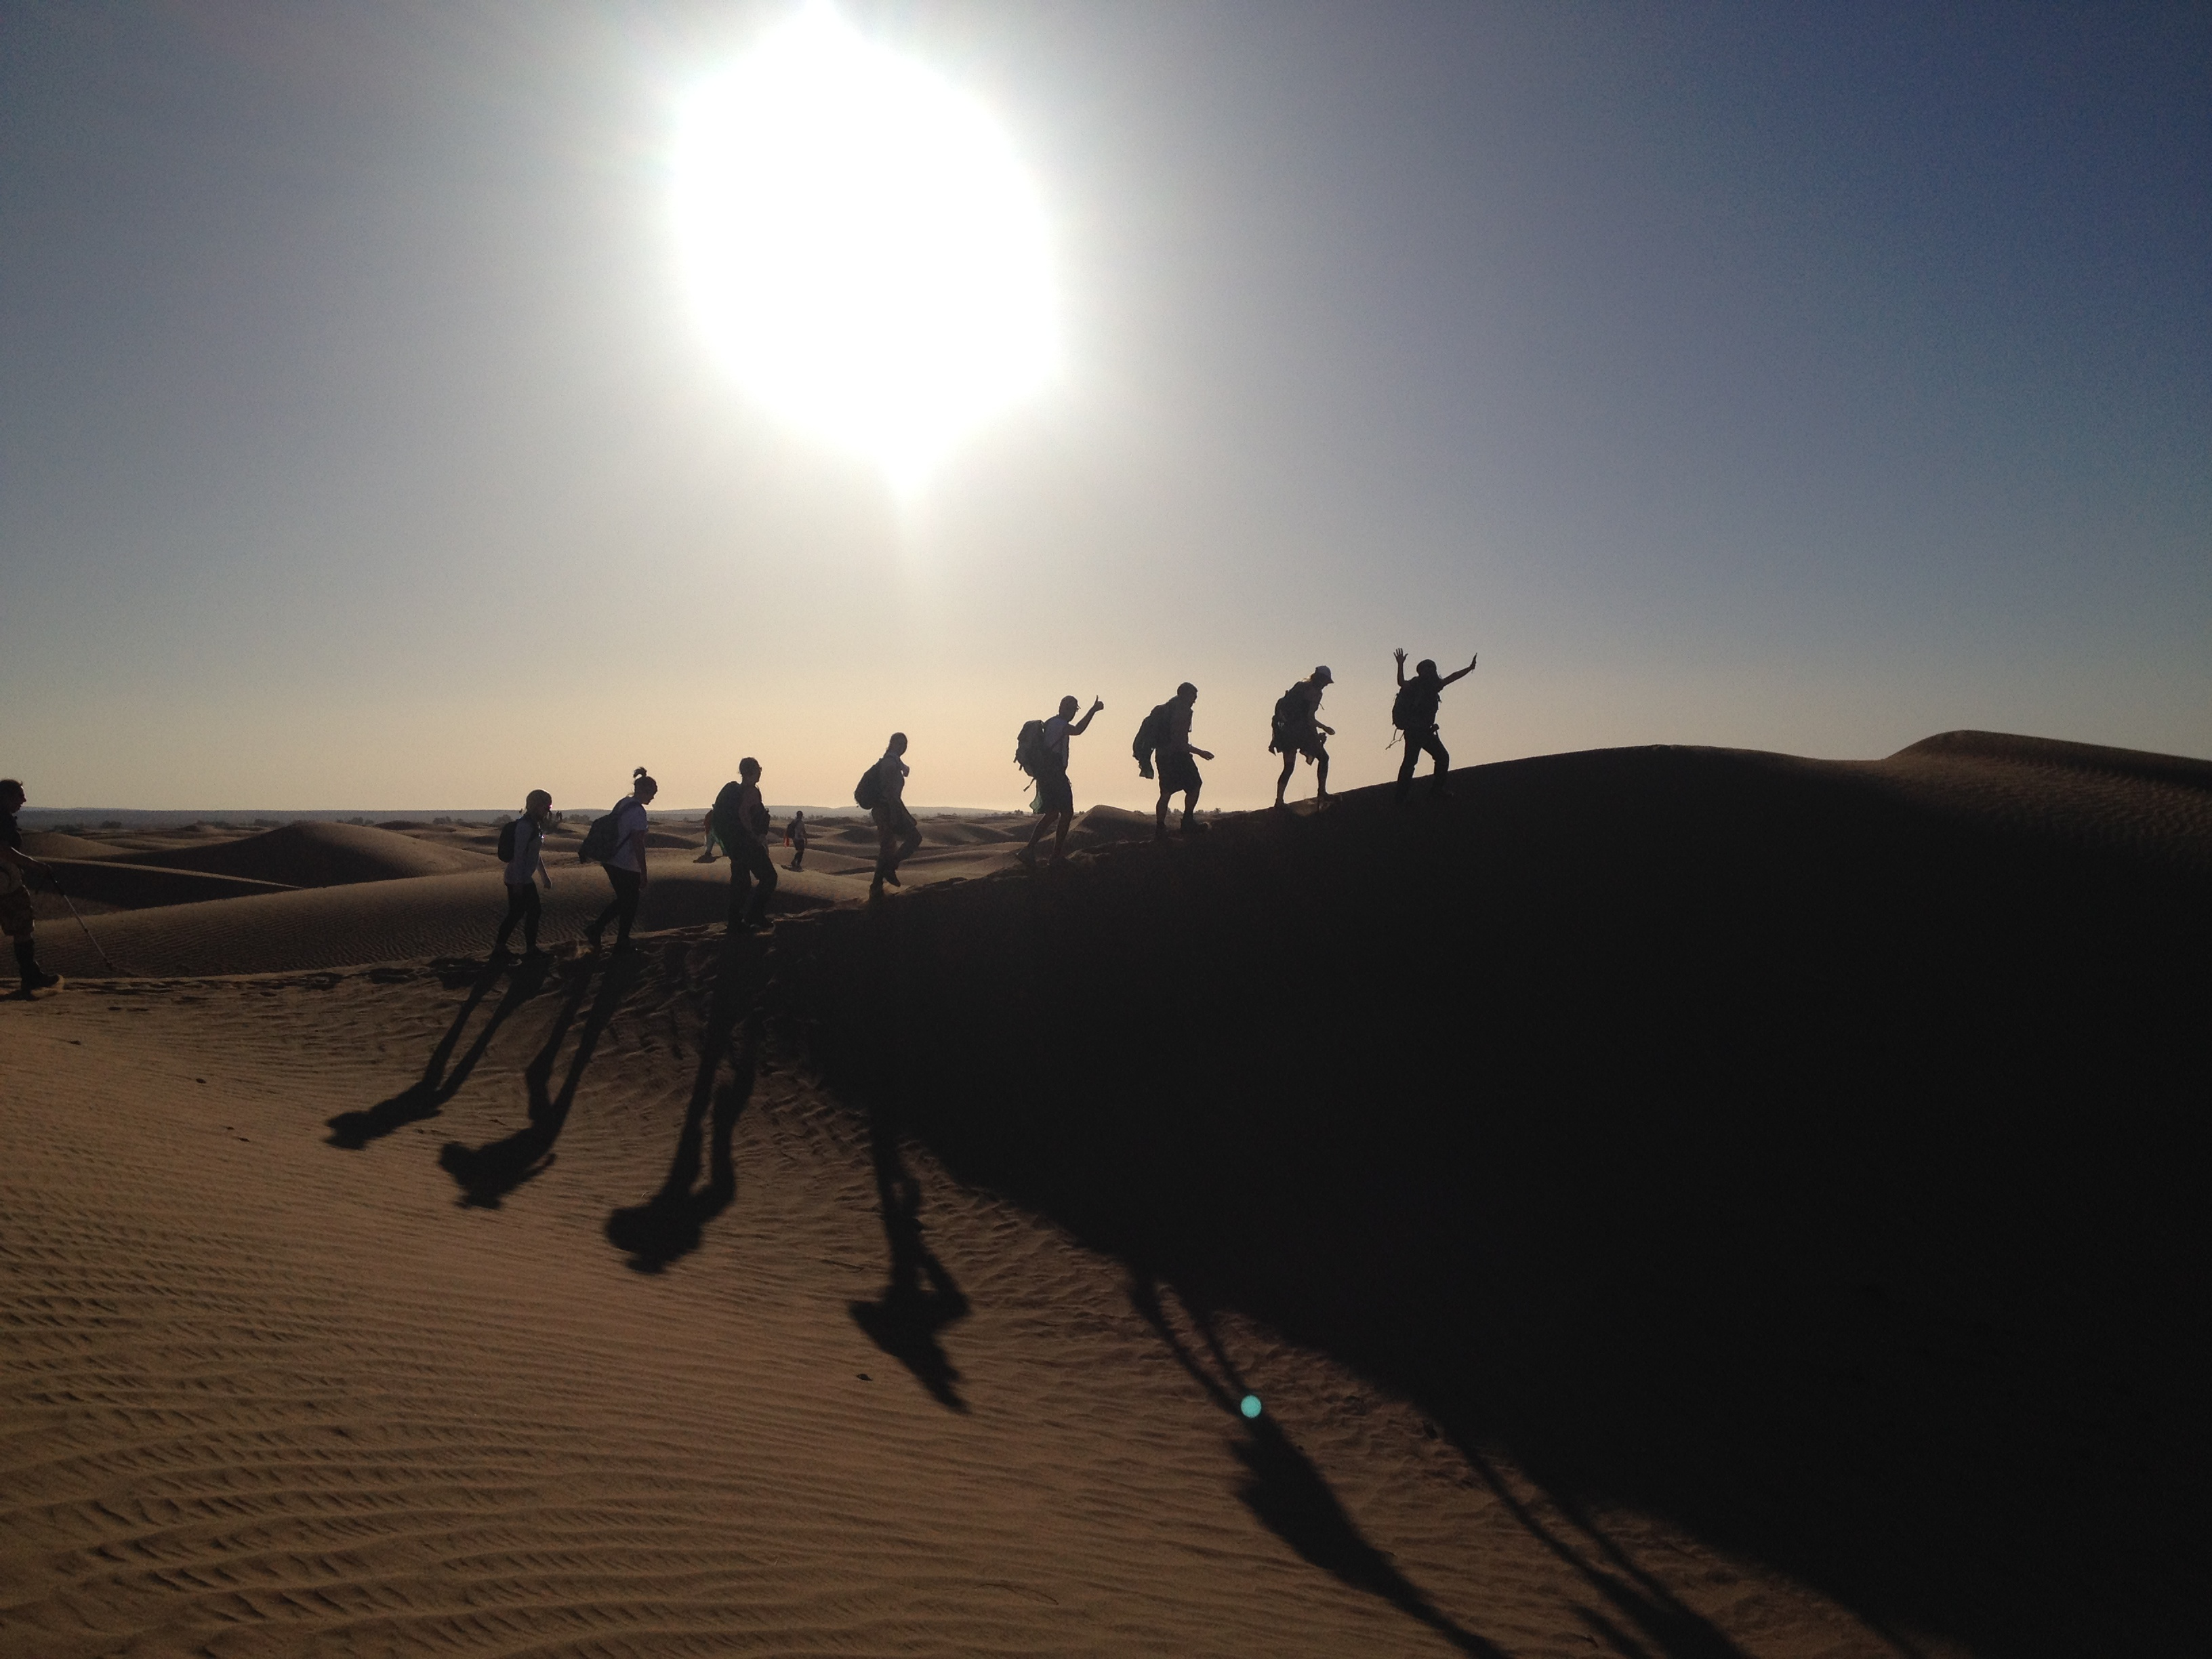 The team trekking across the dunes of the Sahara